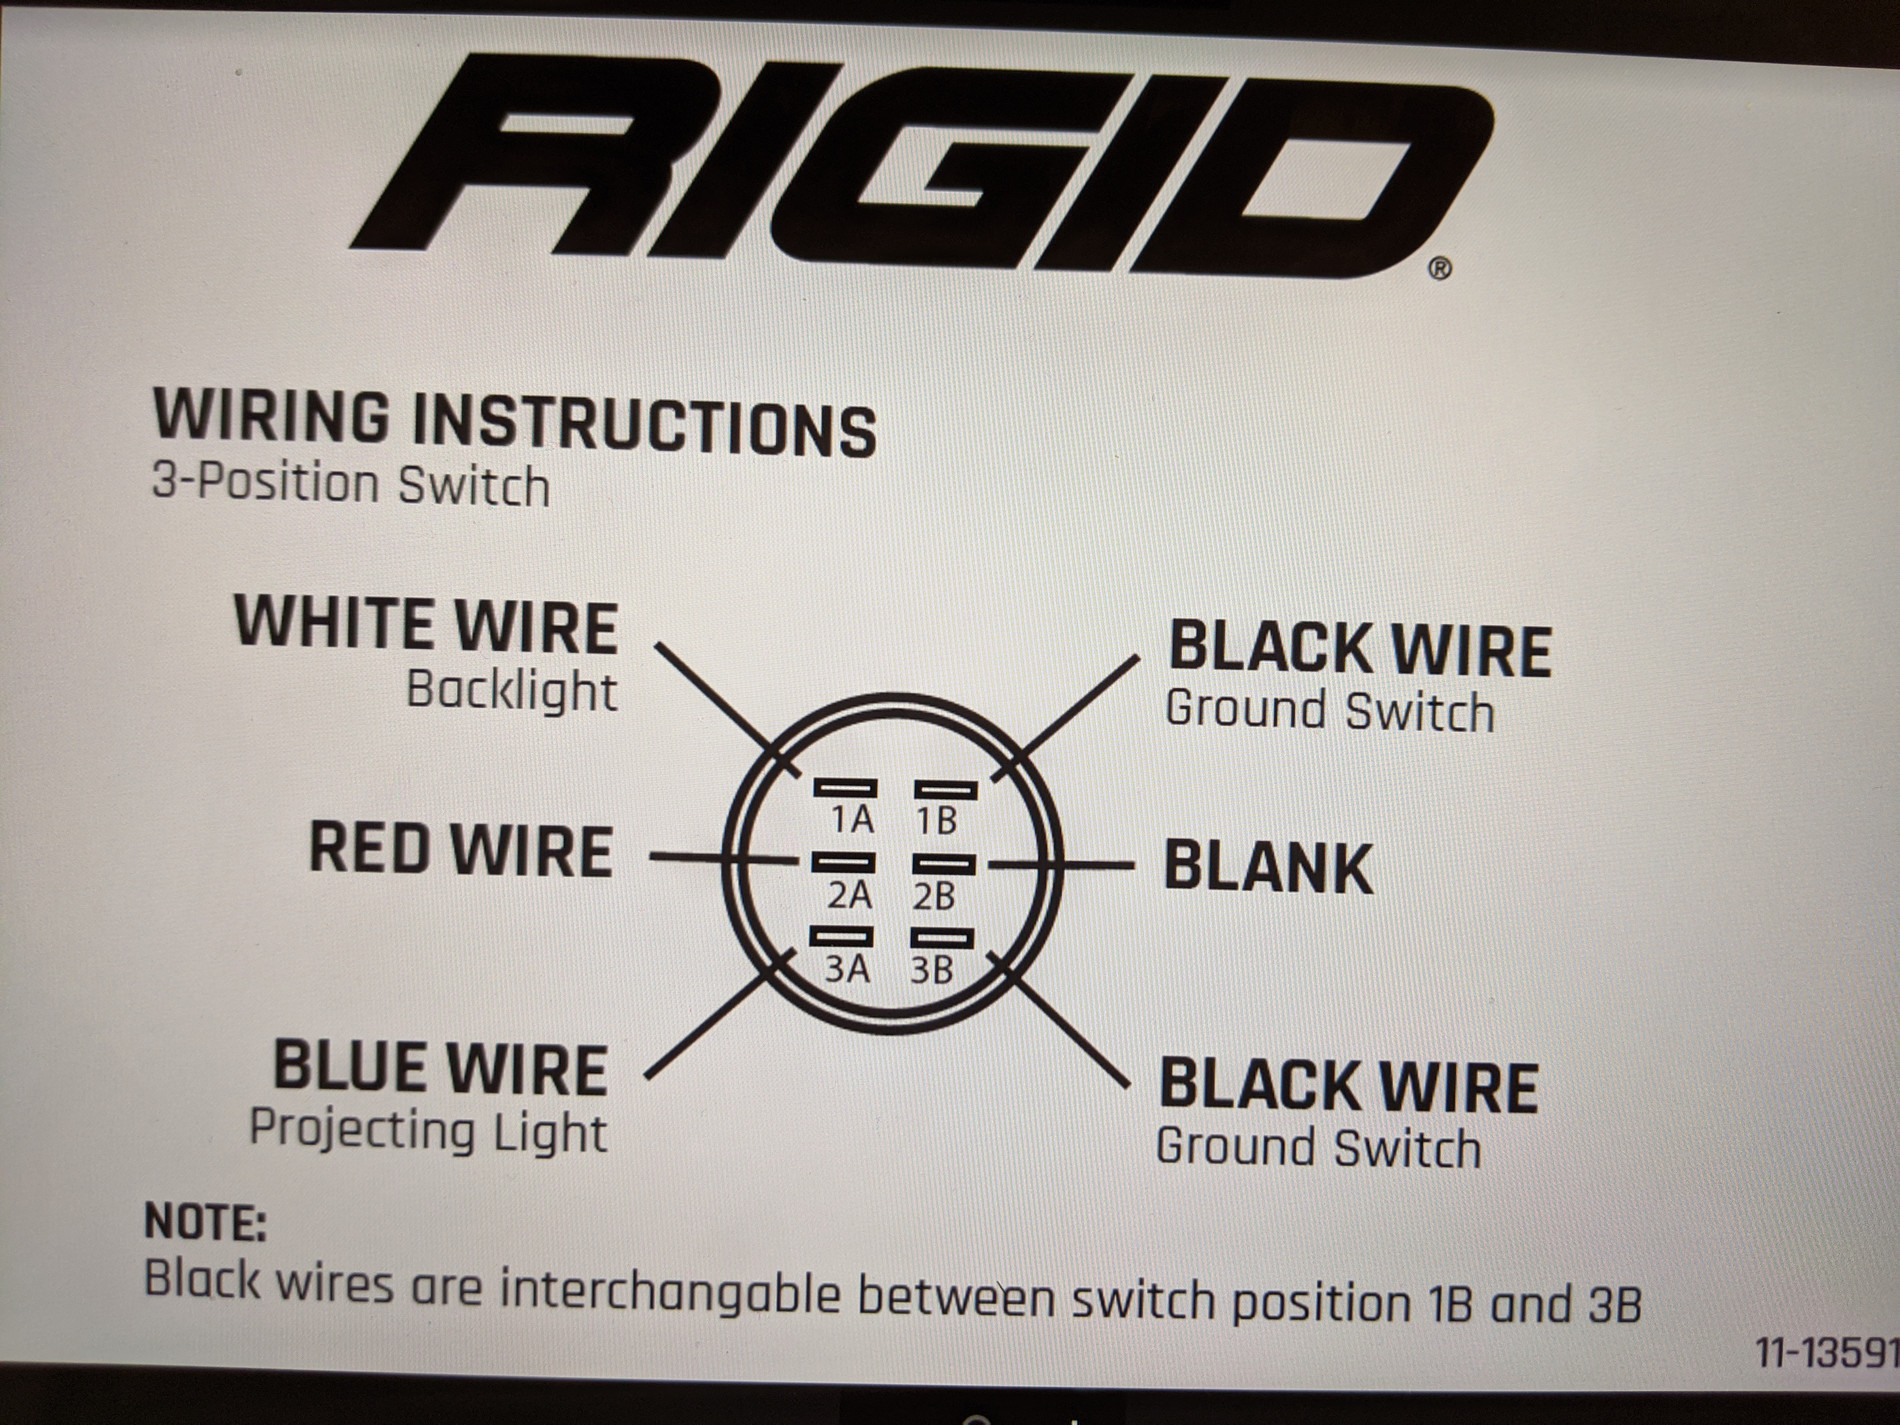 rigid lights wiring diagram rigid 360 series 3 way switch wiring   360 series lights  2018  rigid 360 series 3 way switch wiring